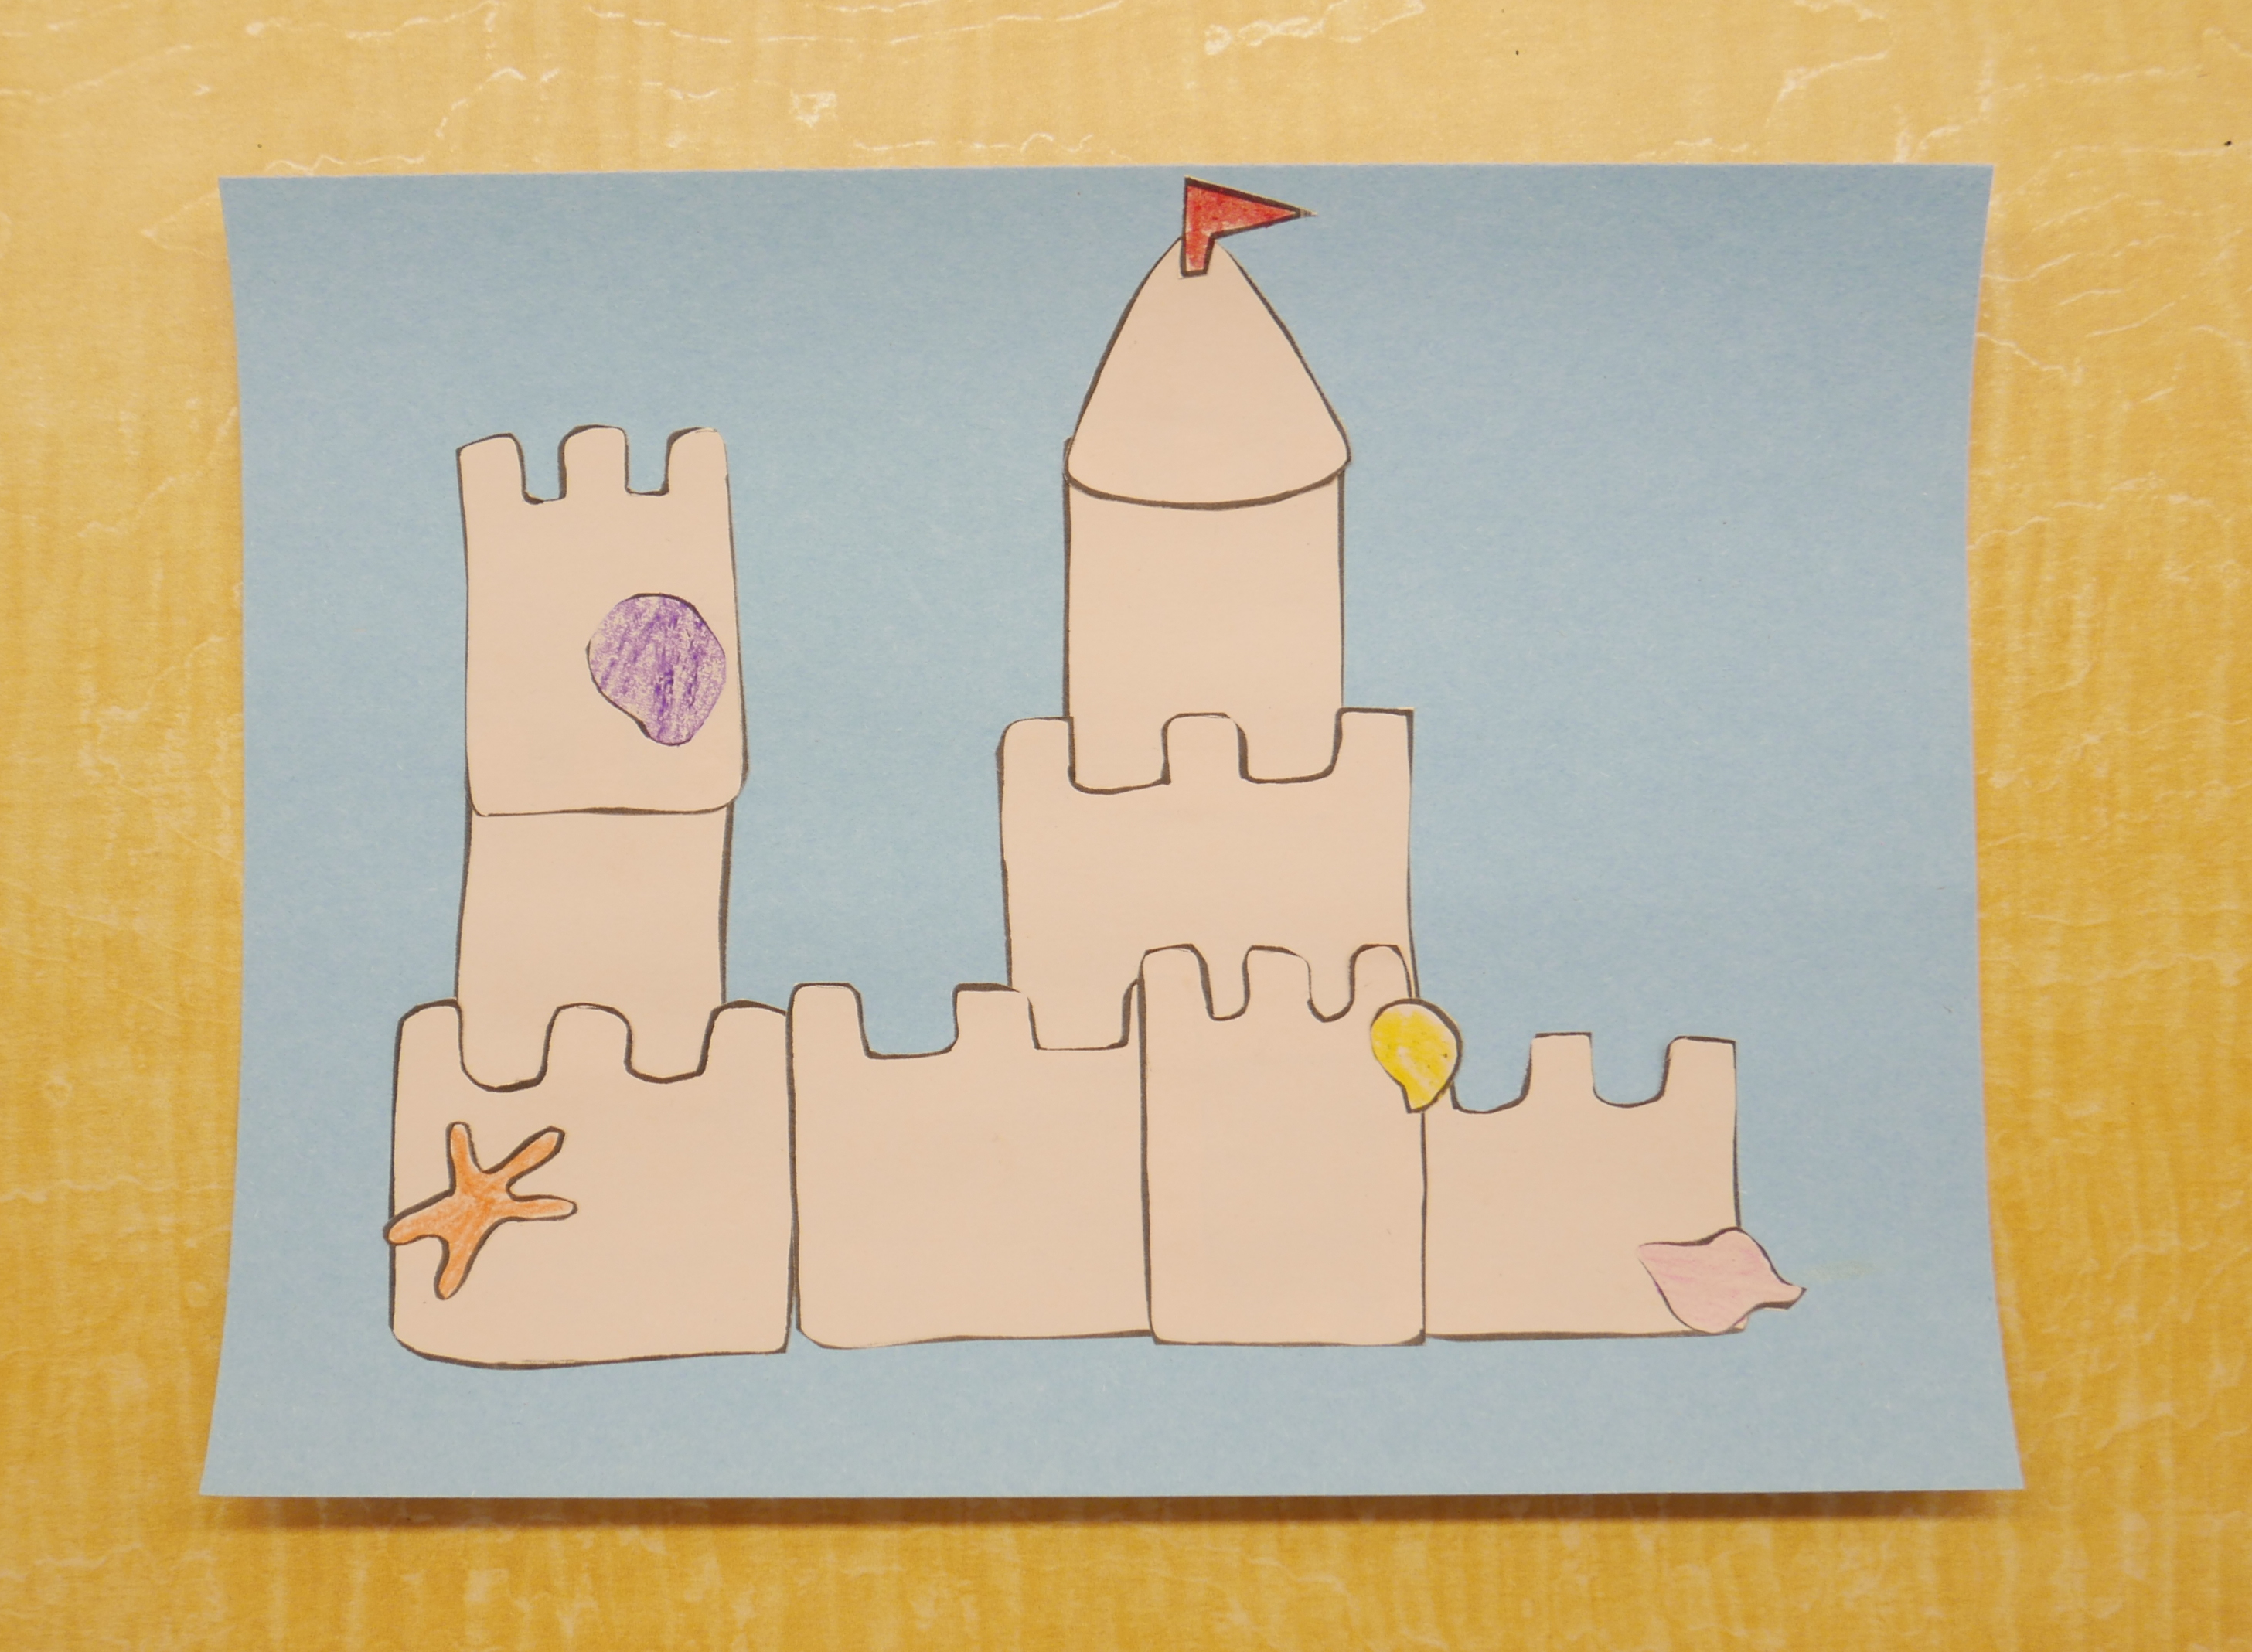 a papercraft that has various sandcastle pieces glued together on a blue background to make a sand c